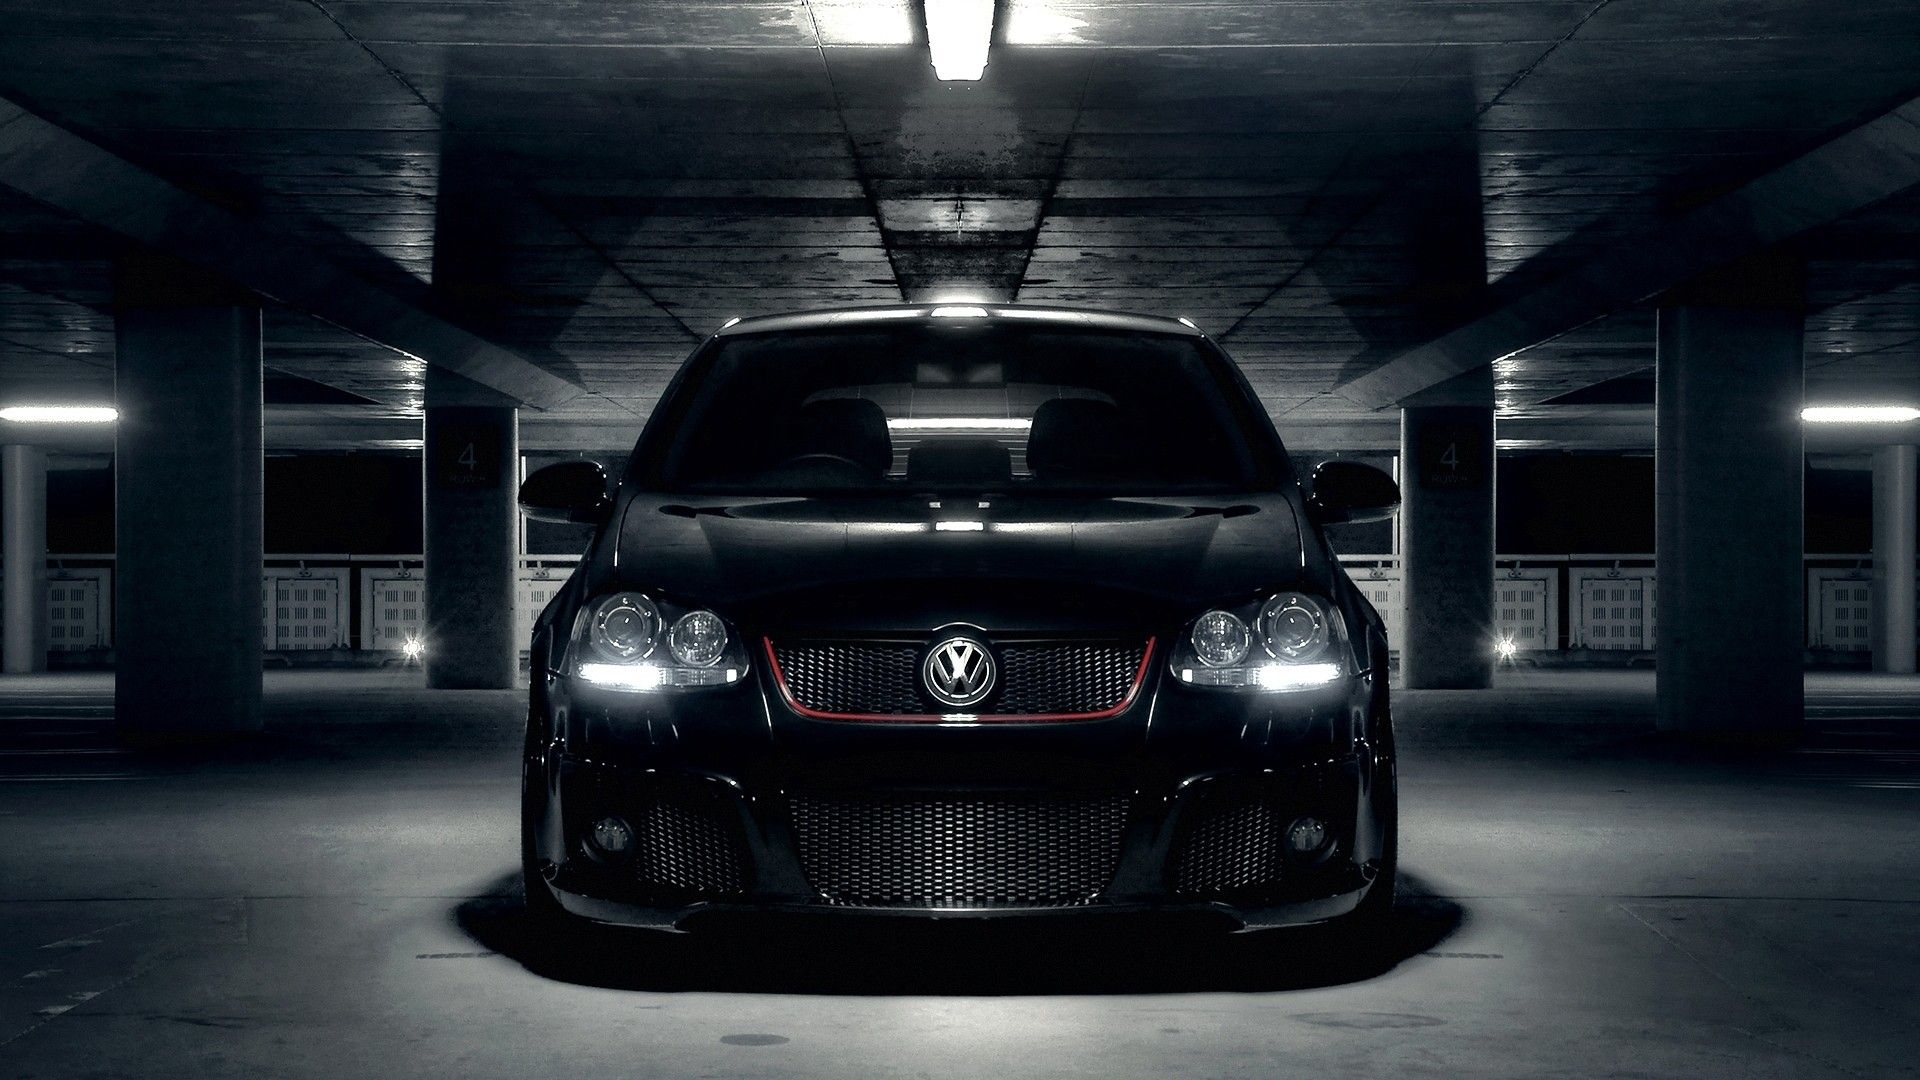 Vw Golf Gti Pictures For Desktop And Wallpaper Car Volkswagen Gti Car Volkswagen Golf Gti